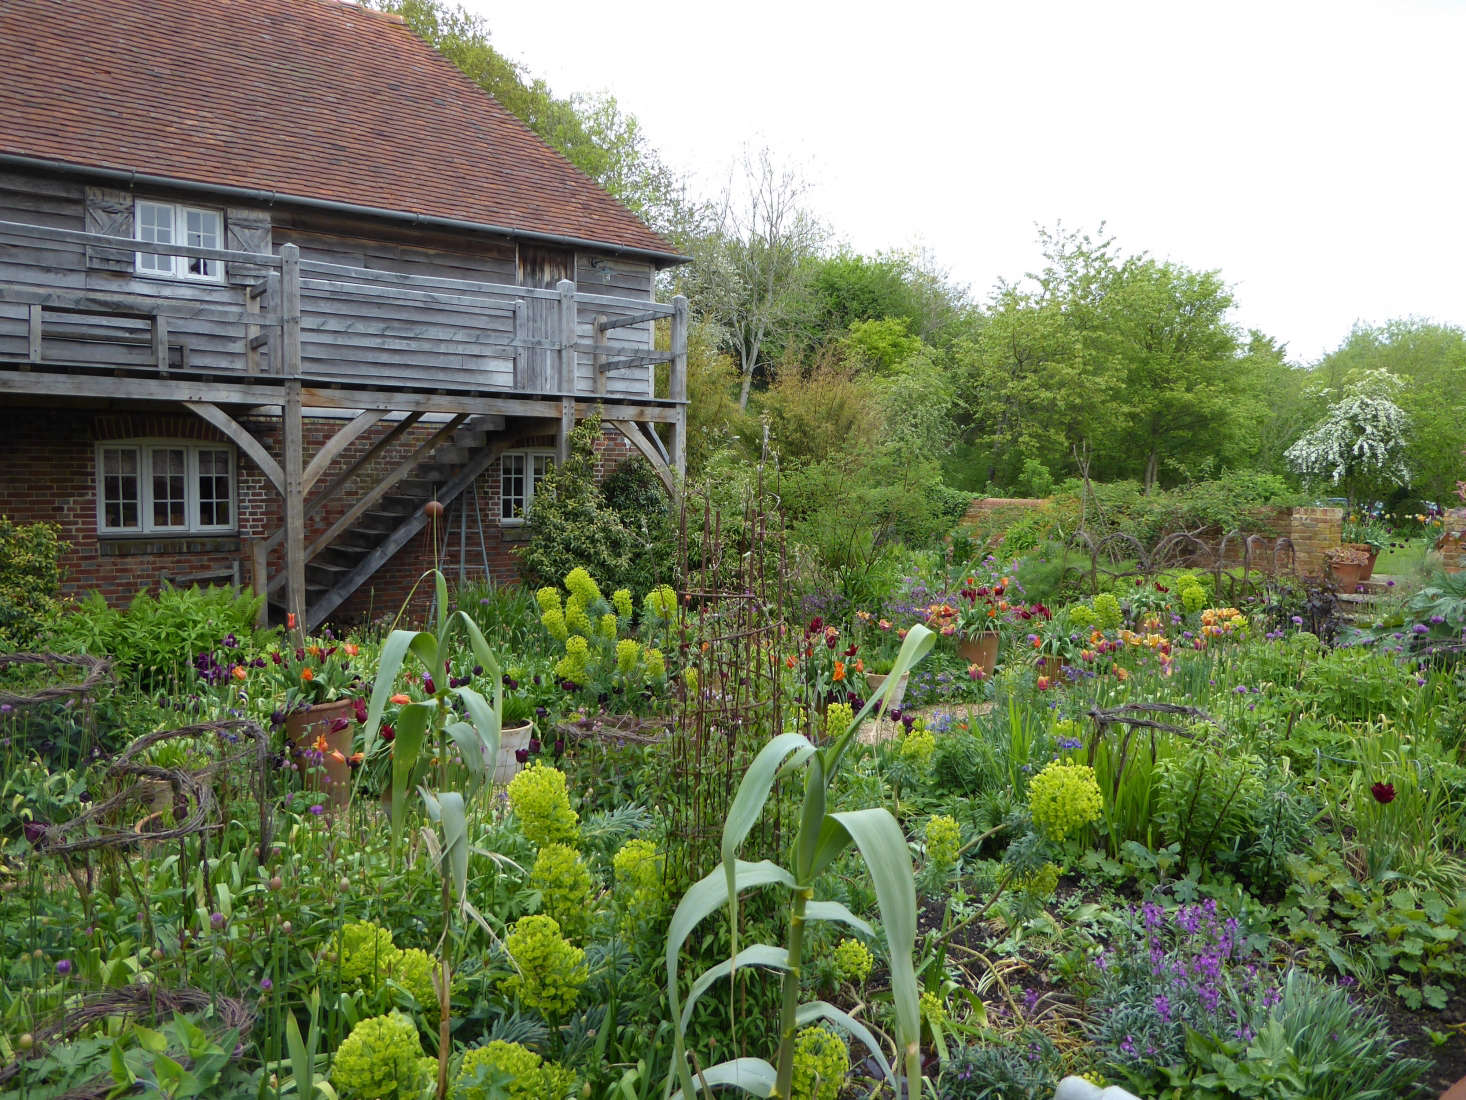 Euphorbia And Spring Bulbs In Bloom In The Oast Garden At Perch Hill, Sarah  Ravenu0027s